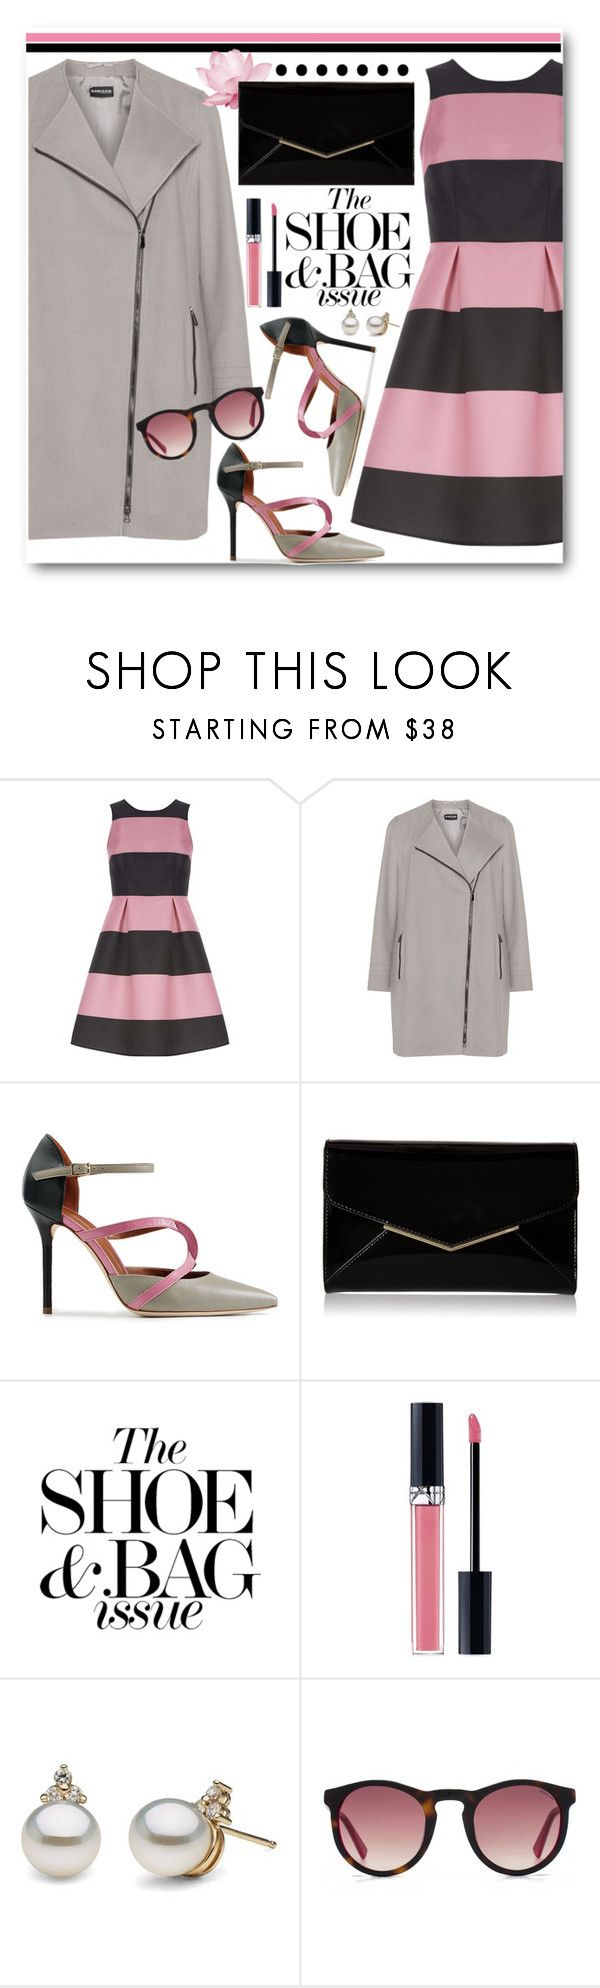 """Dorothy Perkins Pink and Black Dress"" by brendariley-1 ❤ liked on Polyvore featuring Luxe, Samoon, Malone Souliers, Furla, Christian Dior, HOOK LDN, women's clothing, women, female and woman"